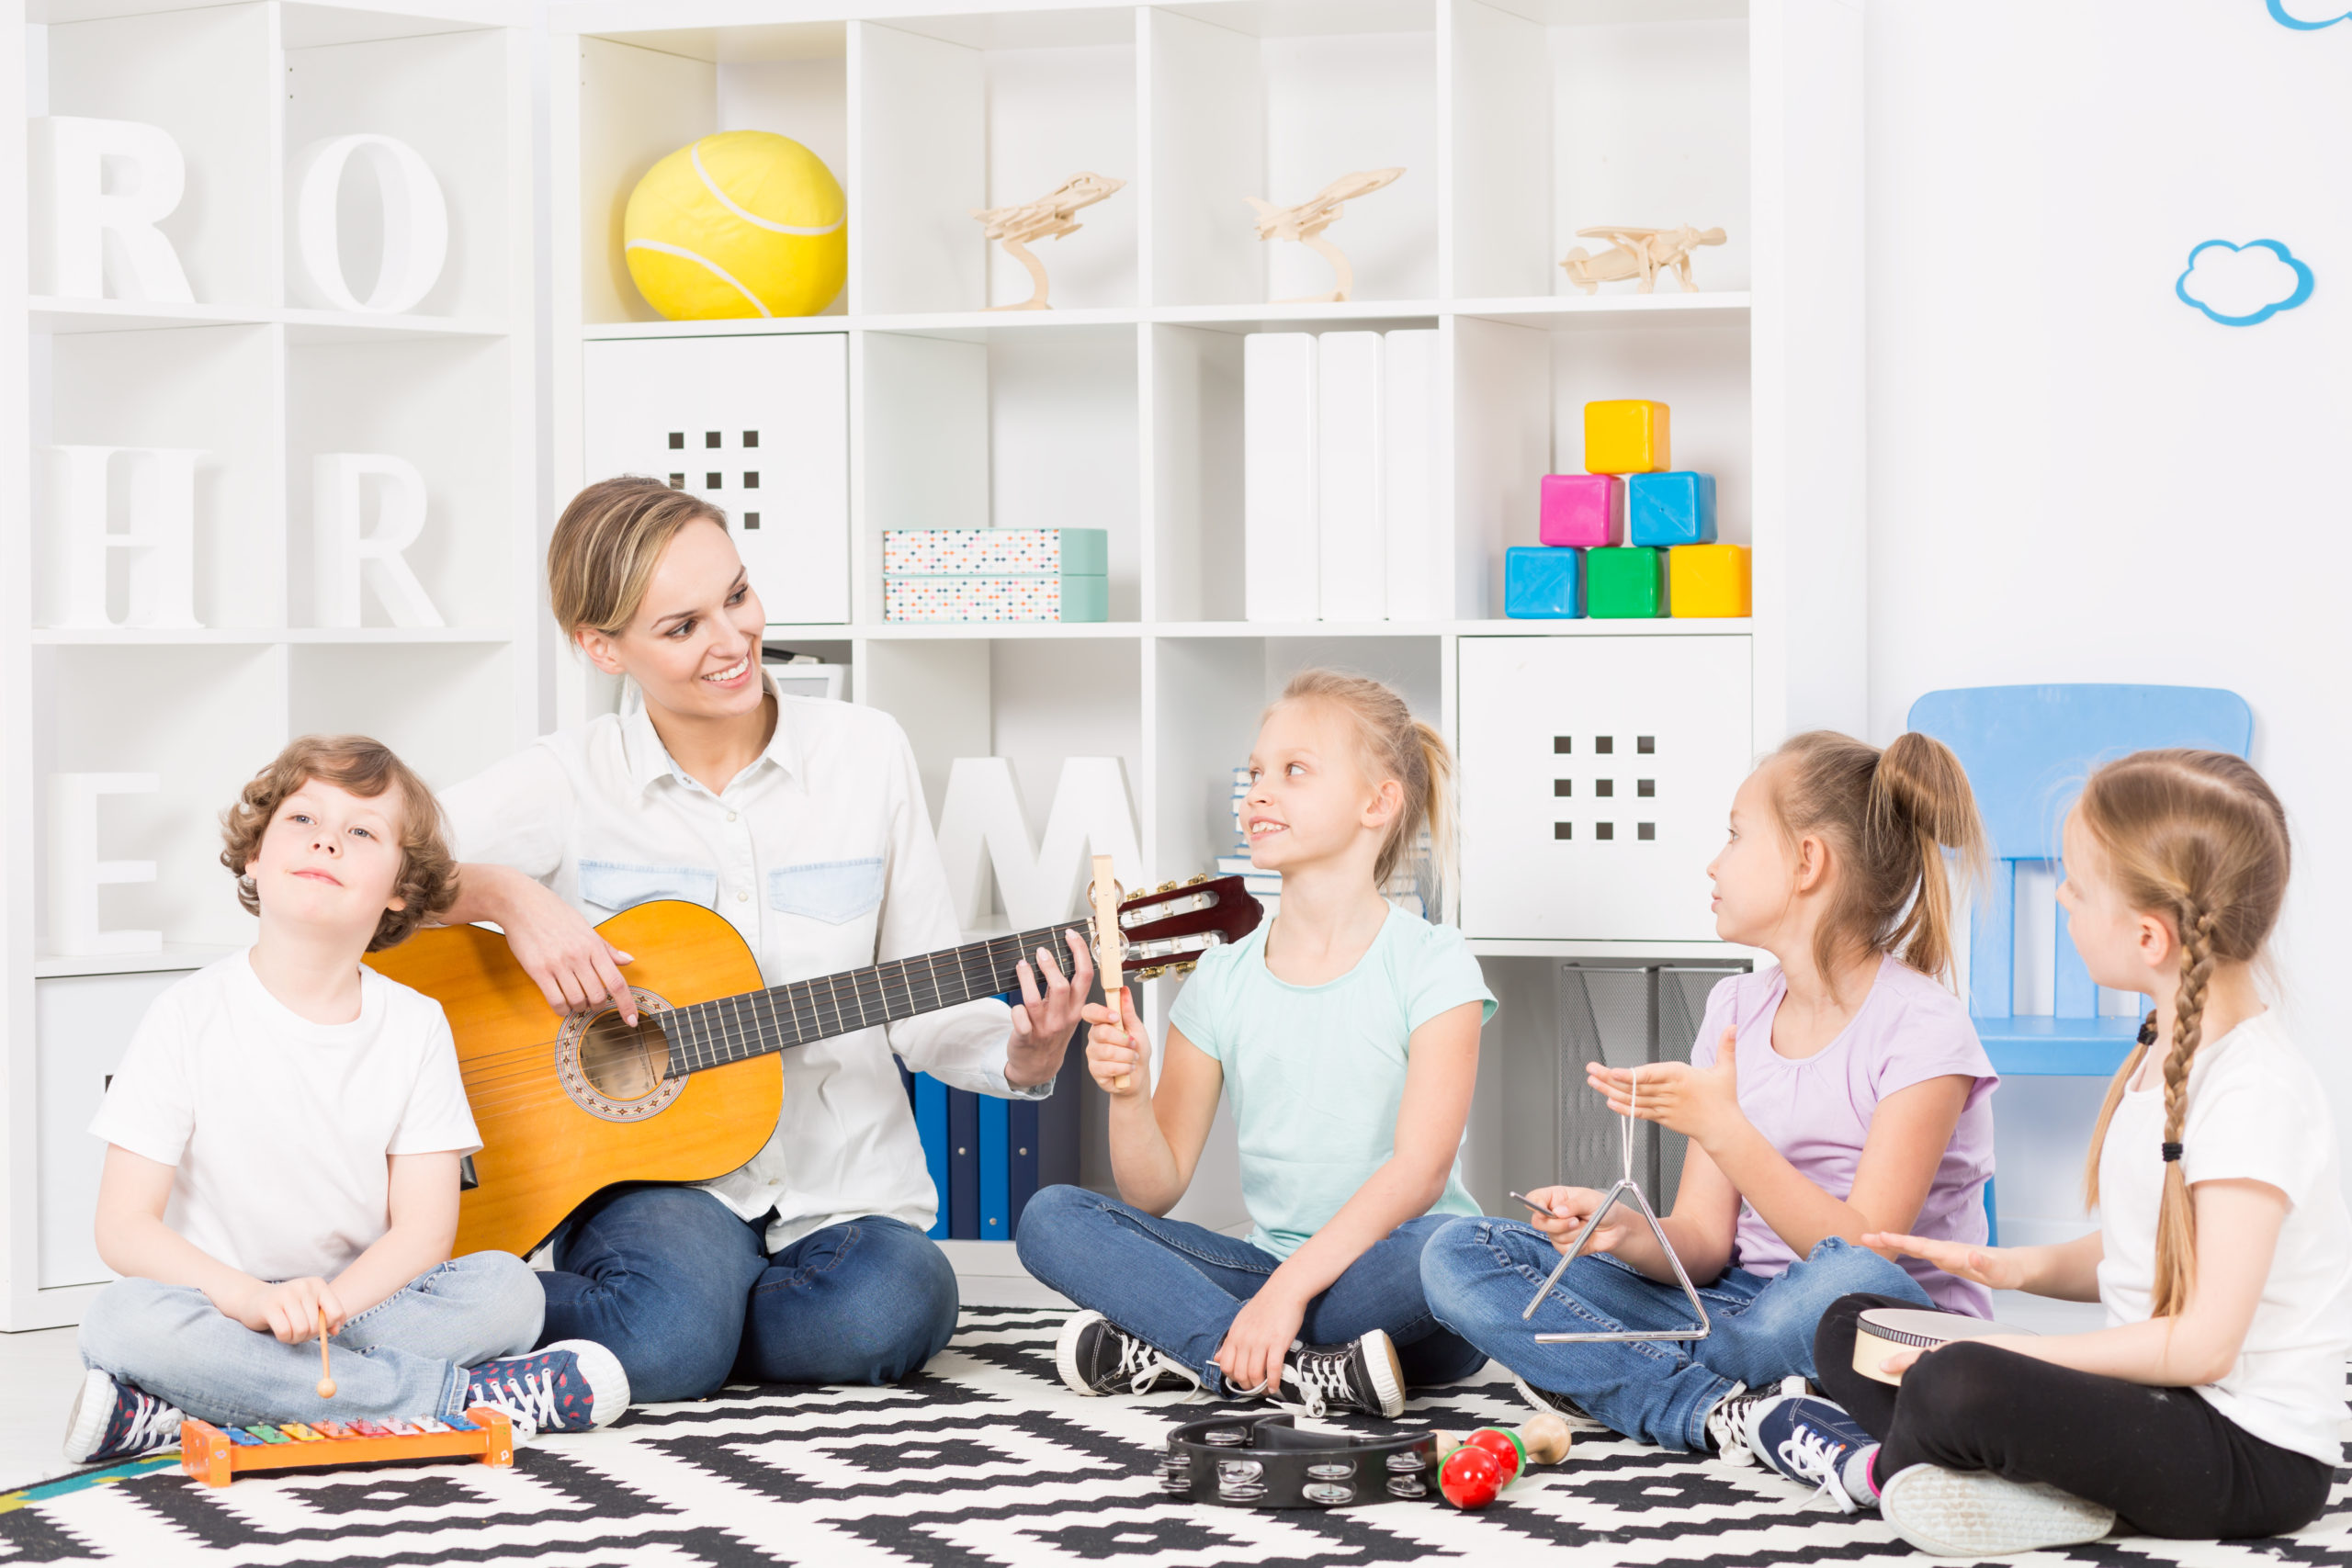 Group,Of,Children,Playing,Different,Musical,Instruments,,Sitting,On,A